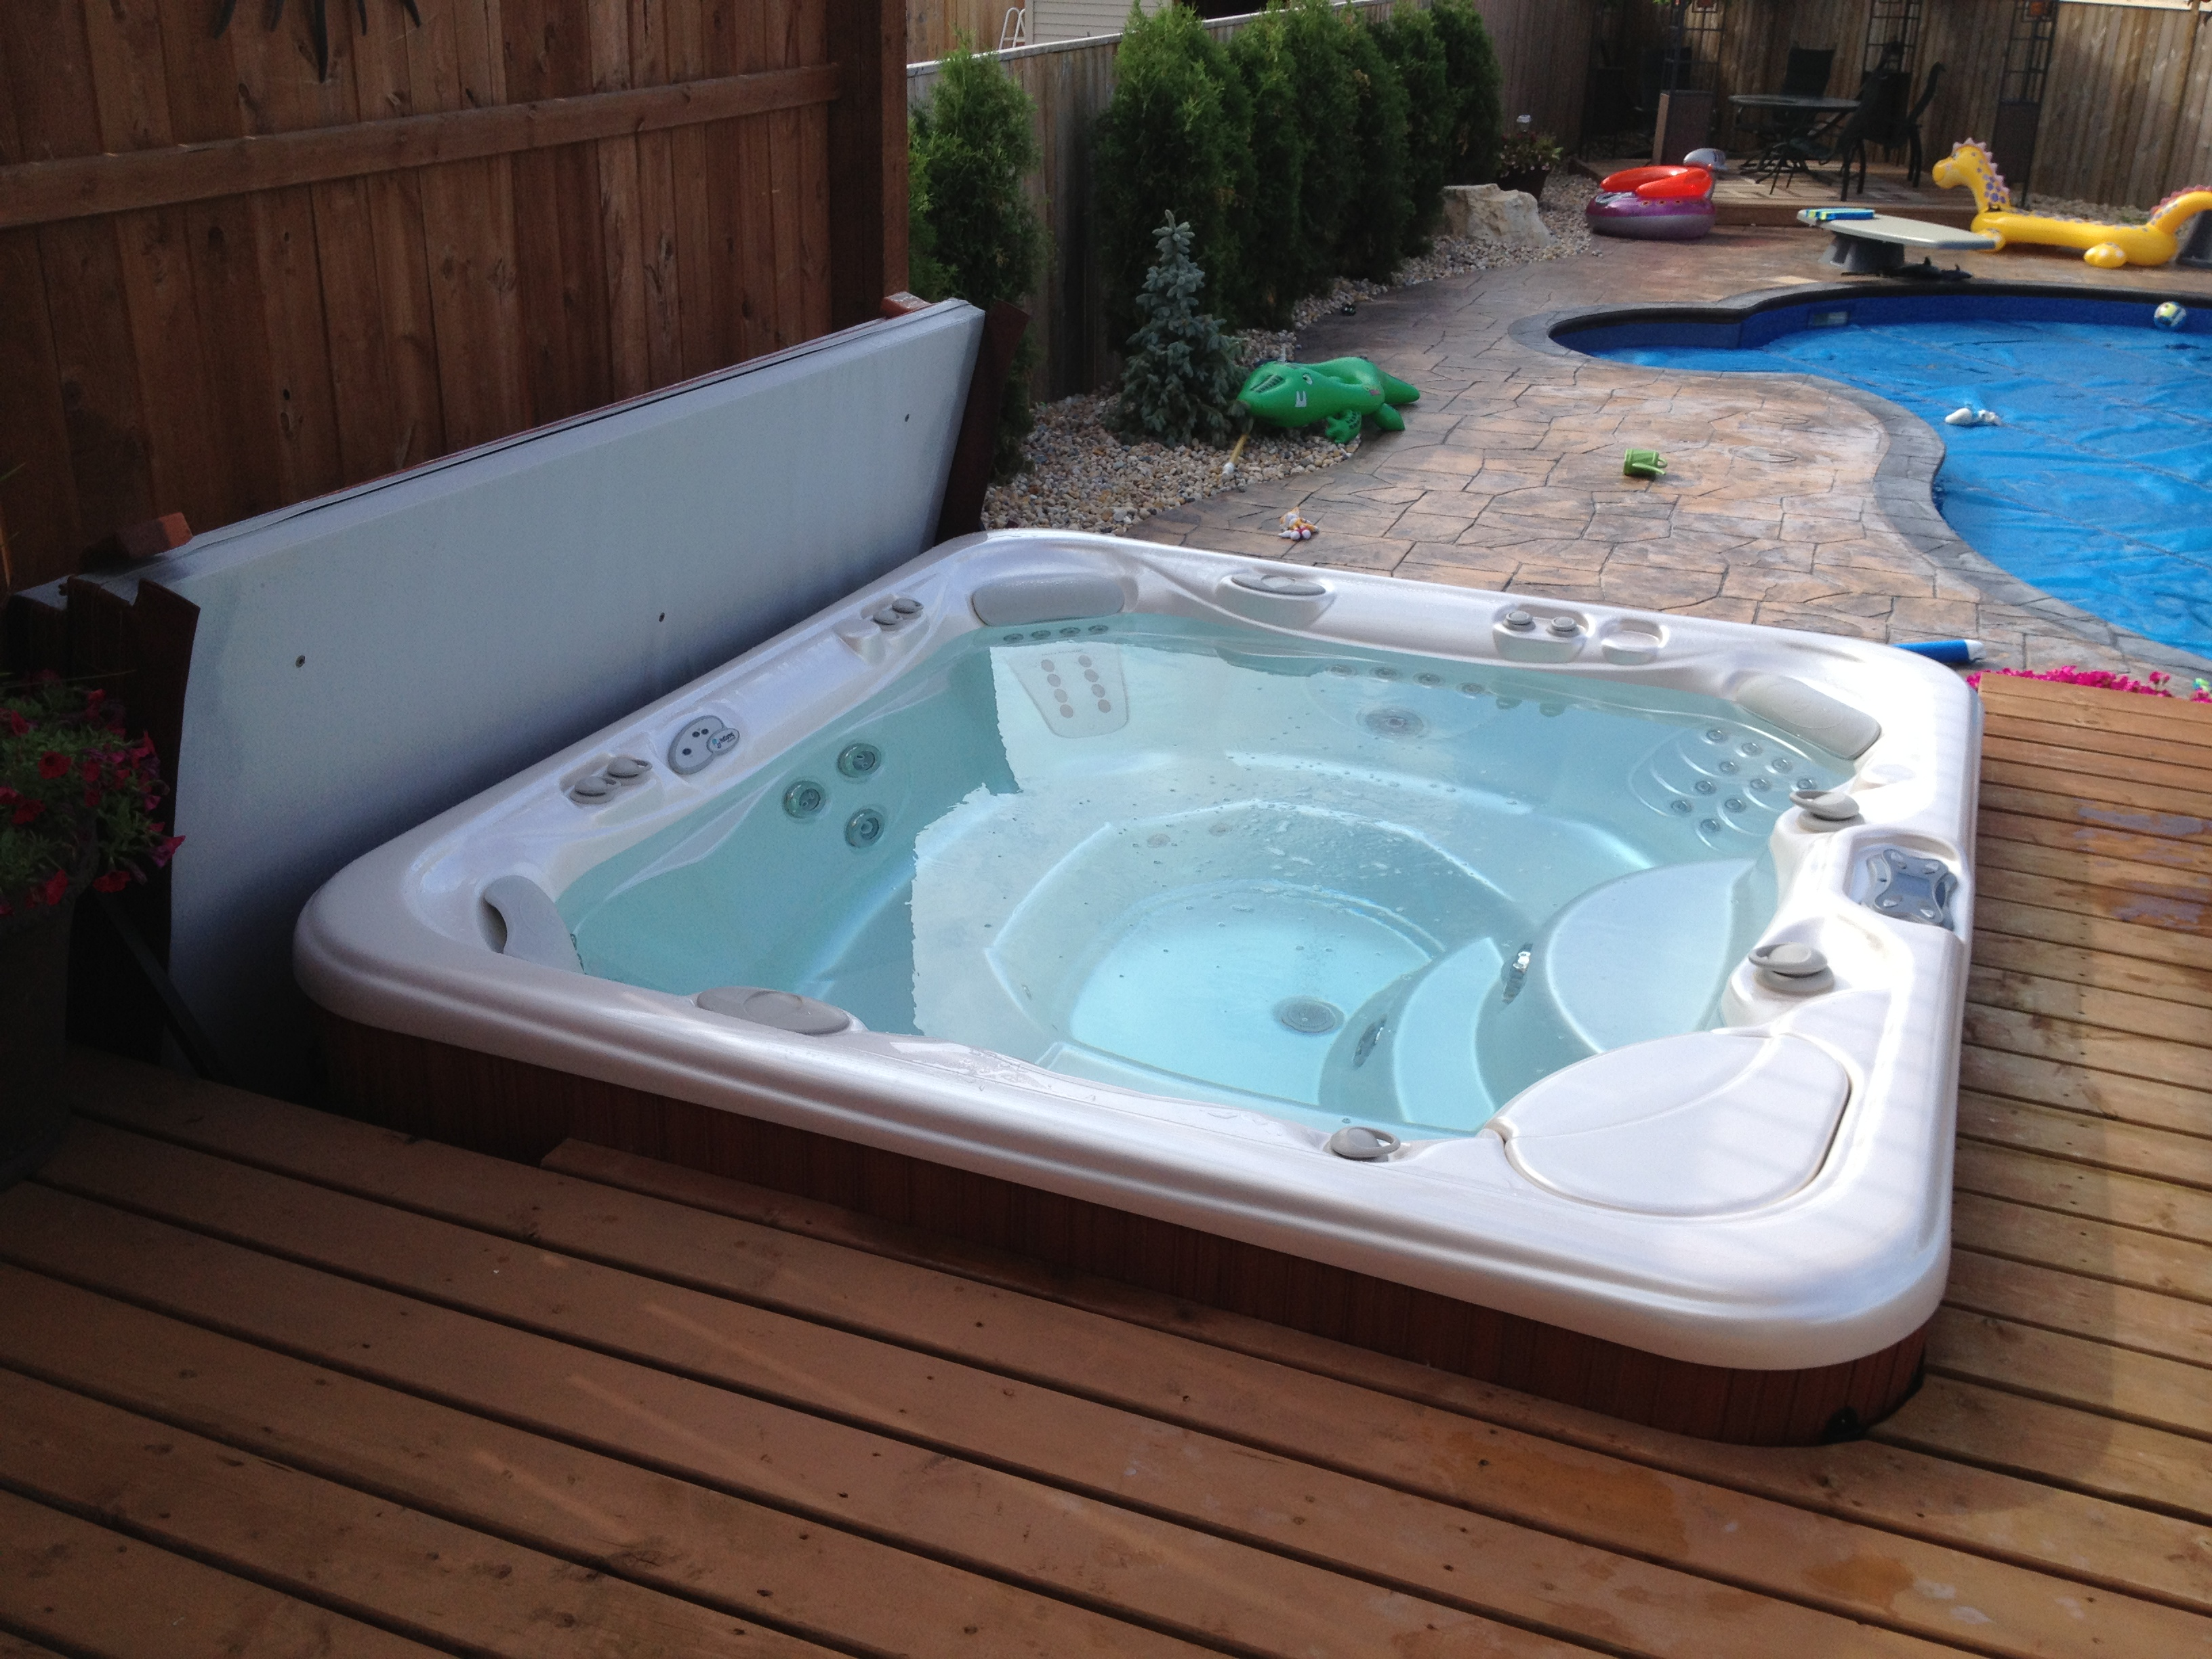 minneapolis pin round hot tubs rubadub springs northern great tub sunken roll cover covers pinterest indoor up wooden